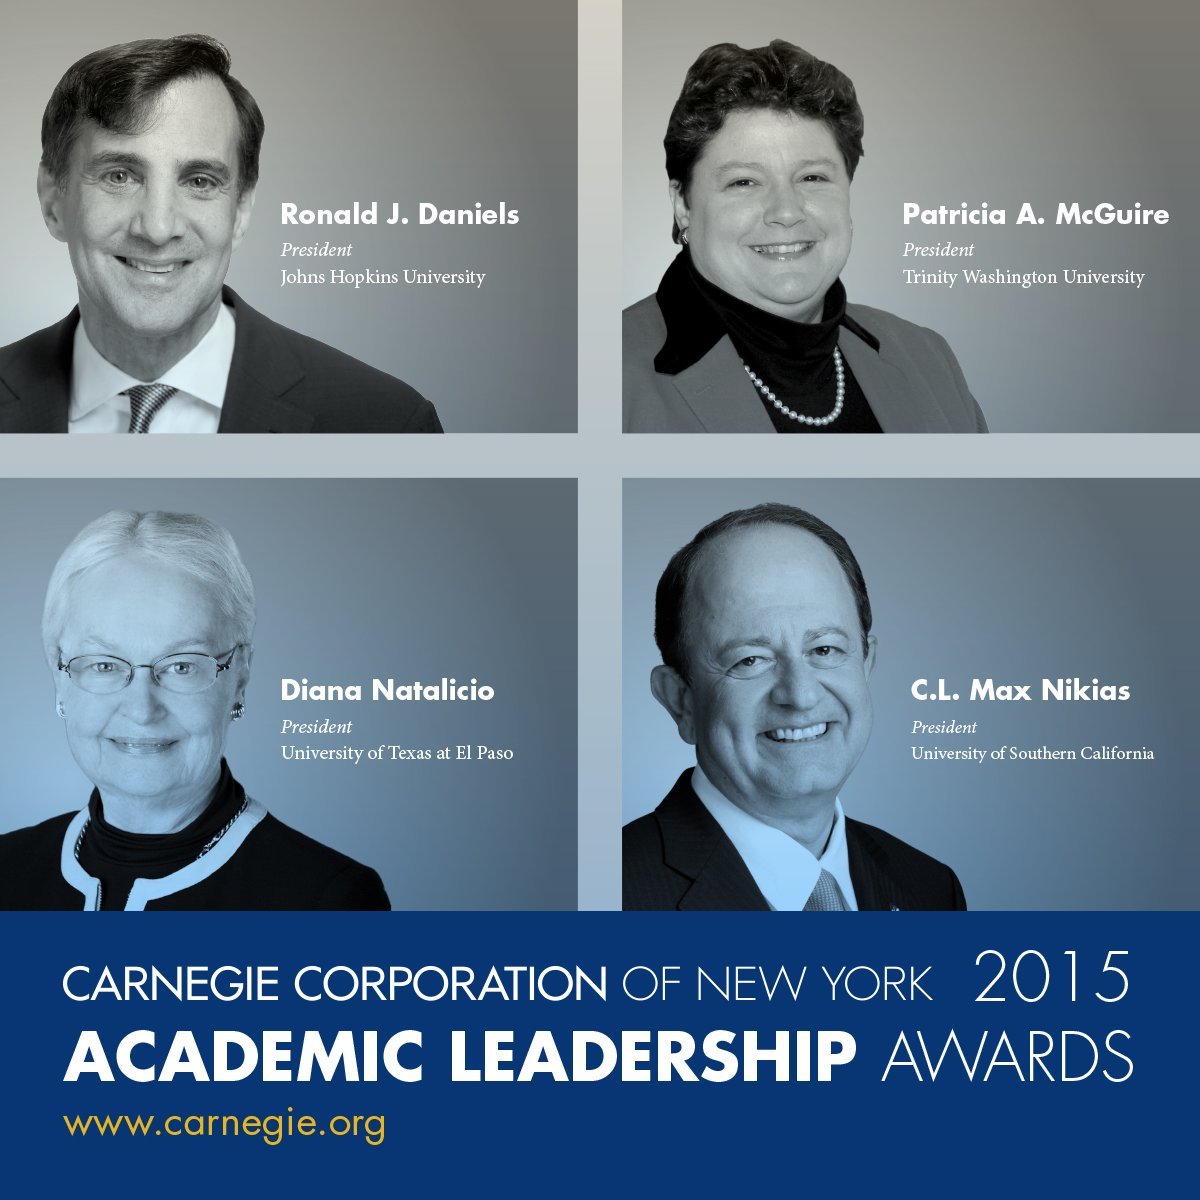 Academic Leadership Award Winners 2015